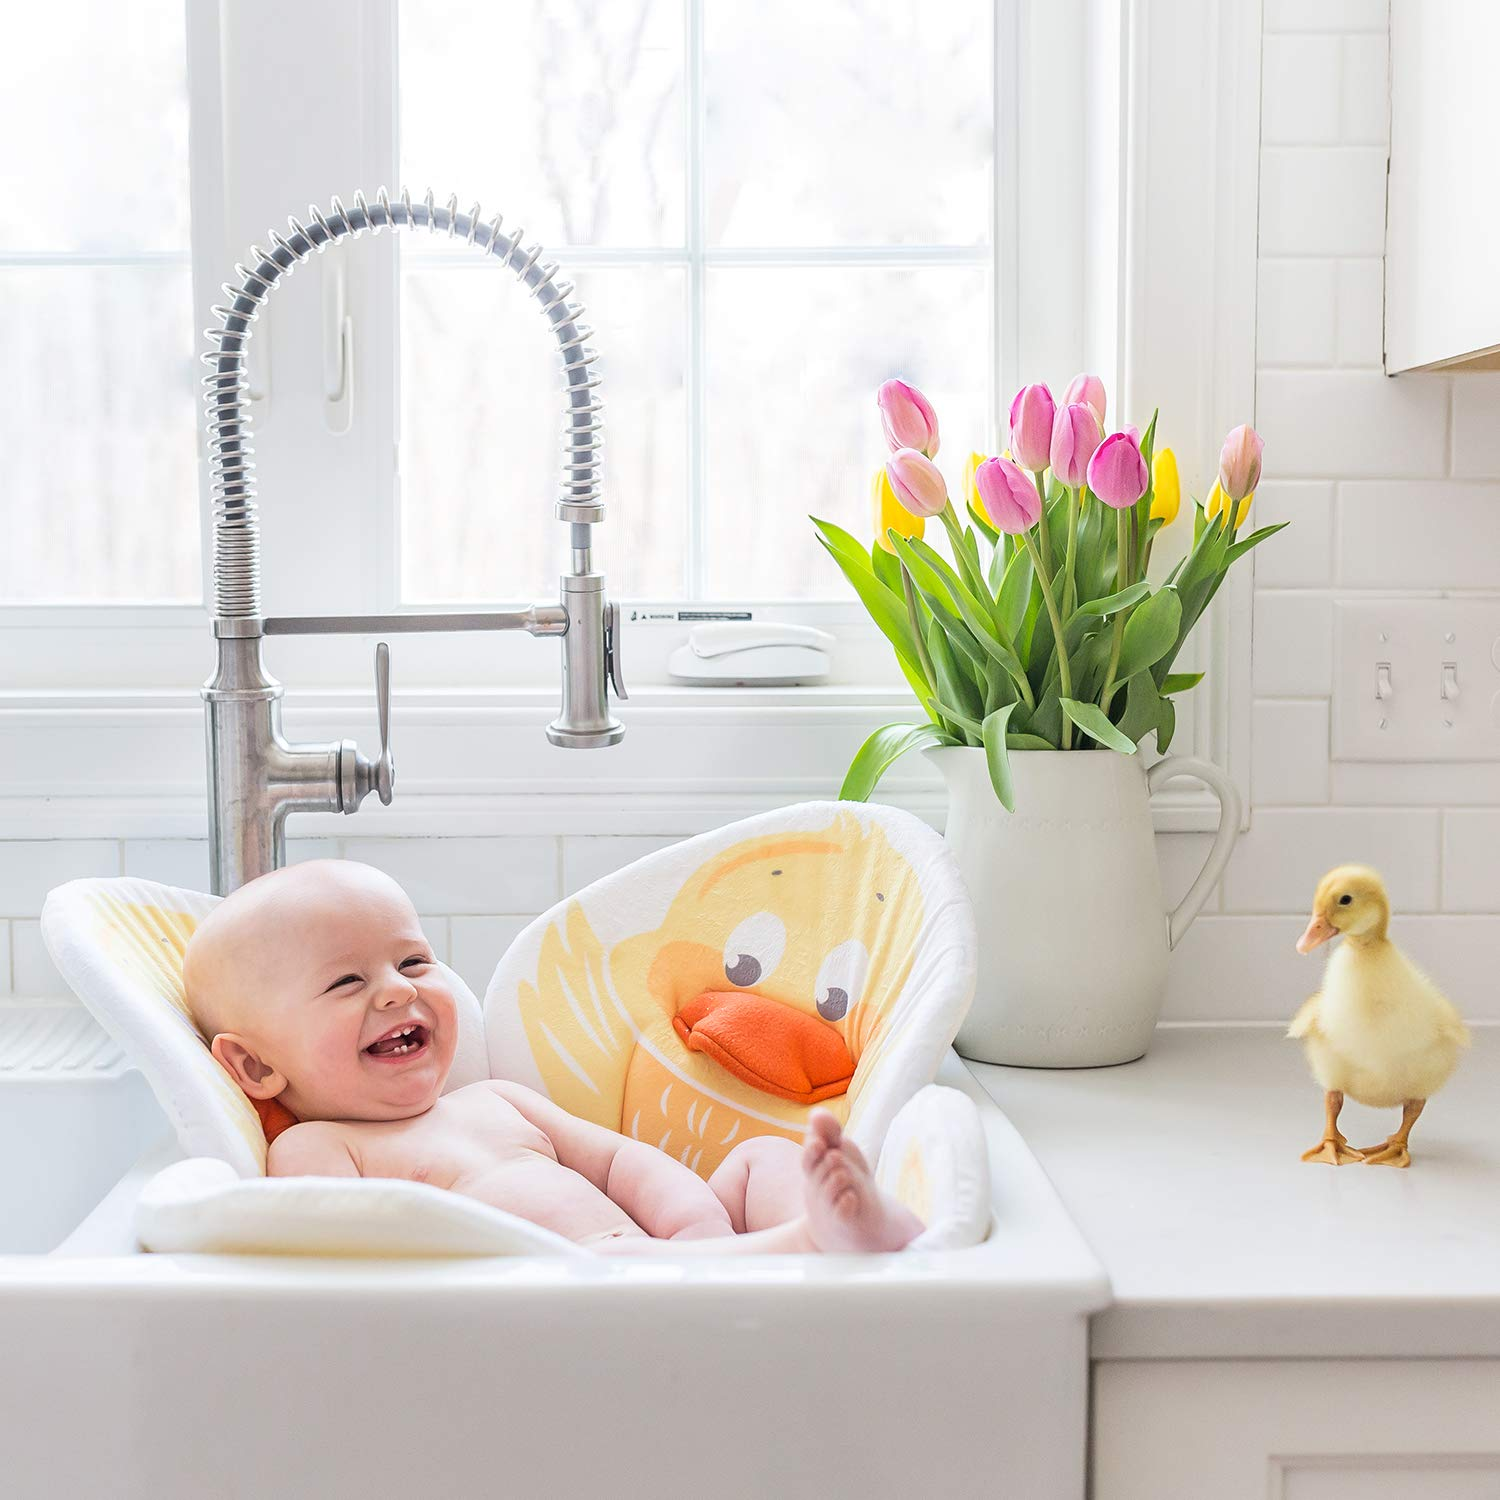 Pond Pals Baby Bath (Duckling) by Blooming Bath